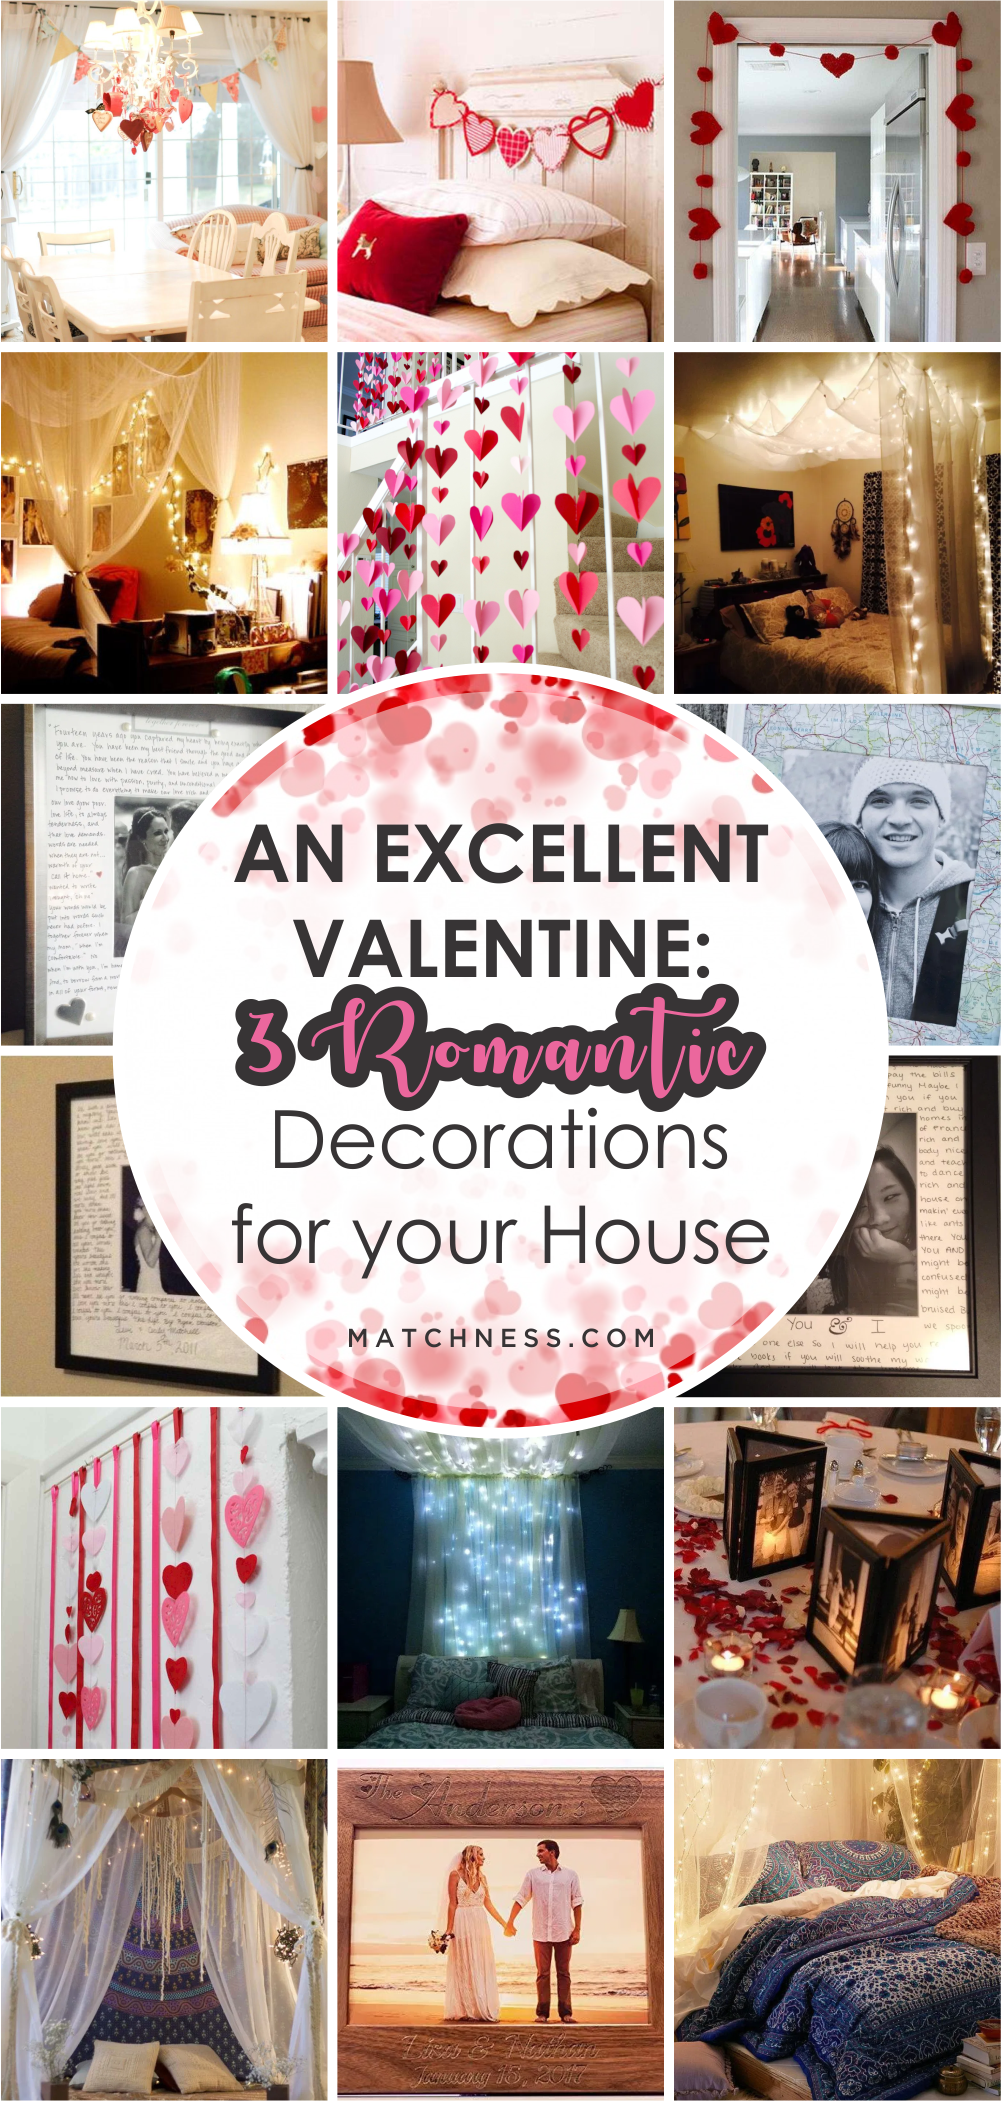 An-excellent-valentine-3-romantic-decorations-for-your-house-1